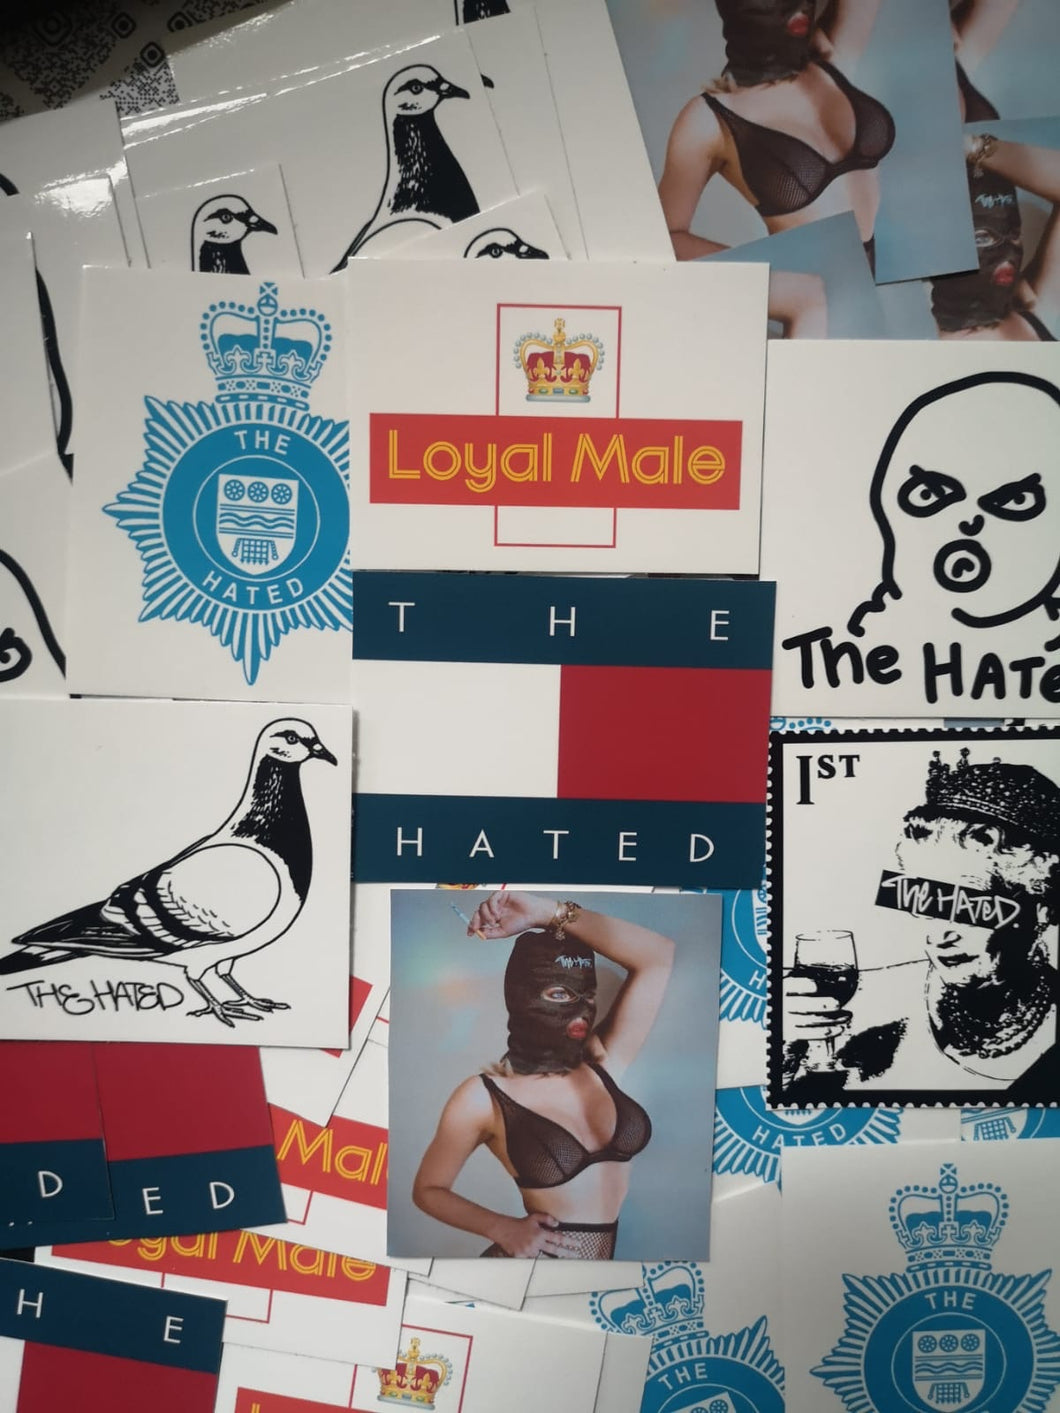 The Hated mixed sticker pack - The Hated Skateboards